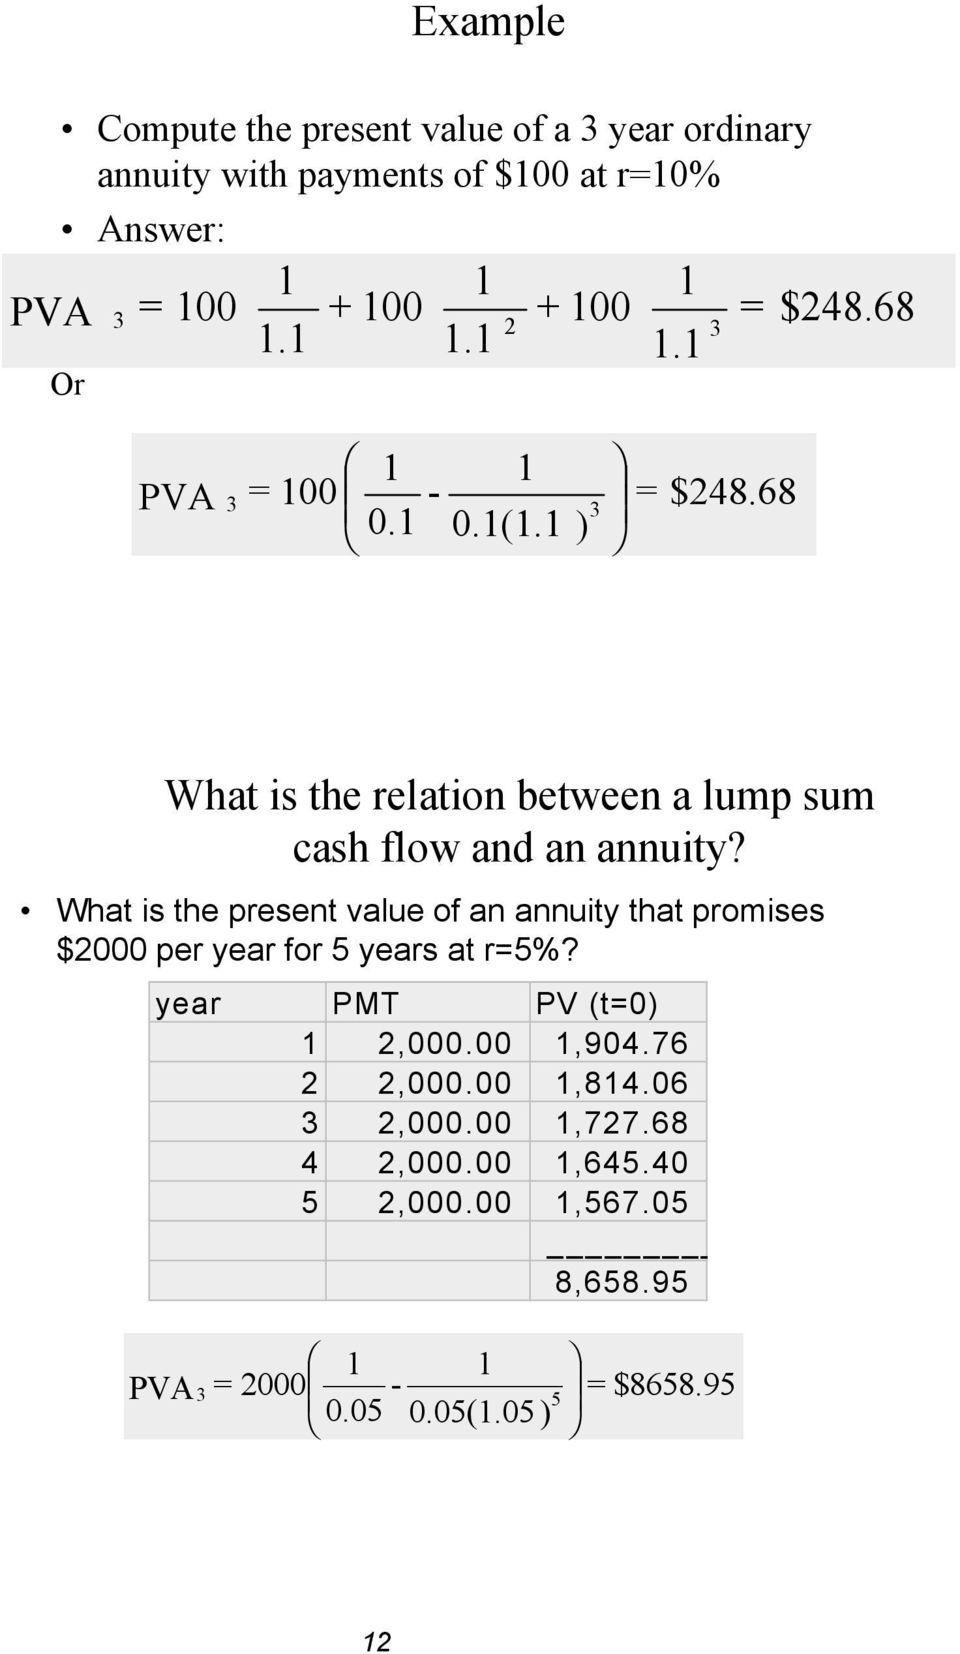 What is the present value of an annuity that promises $2000 per year for 5 years at r=5%? year PMT PV (t=0) 1 2,000.00 1,904.